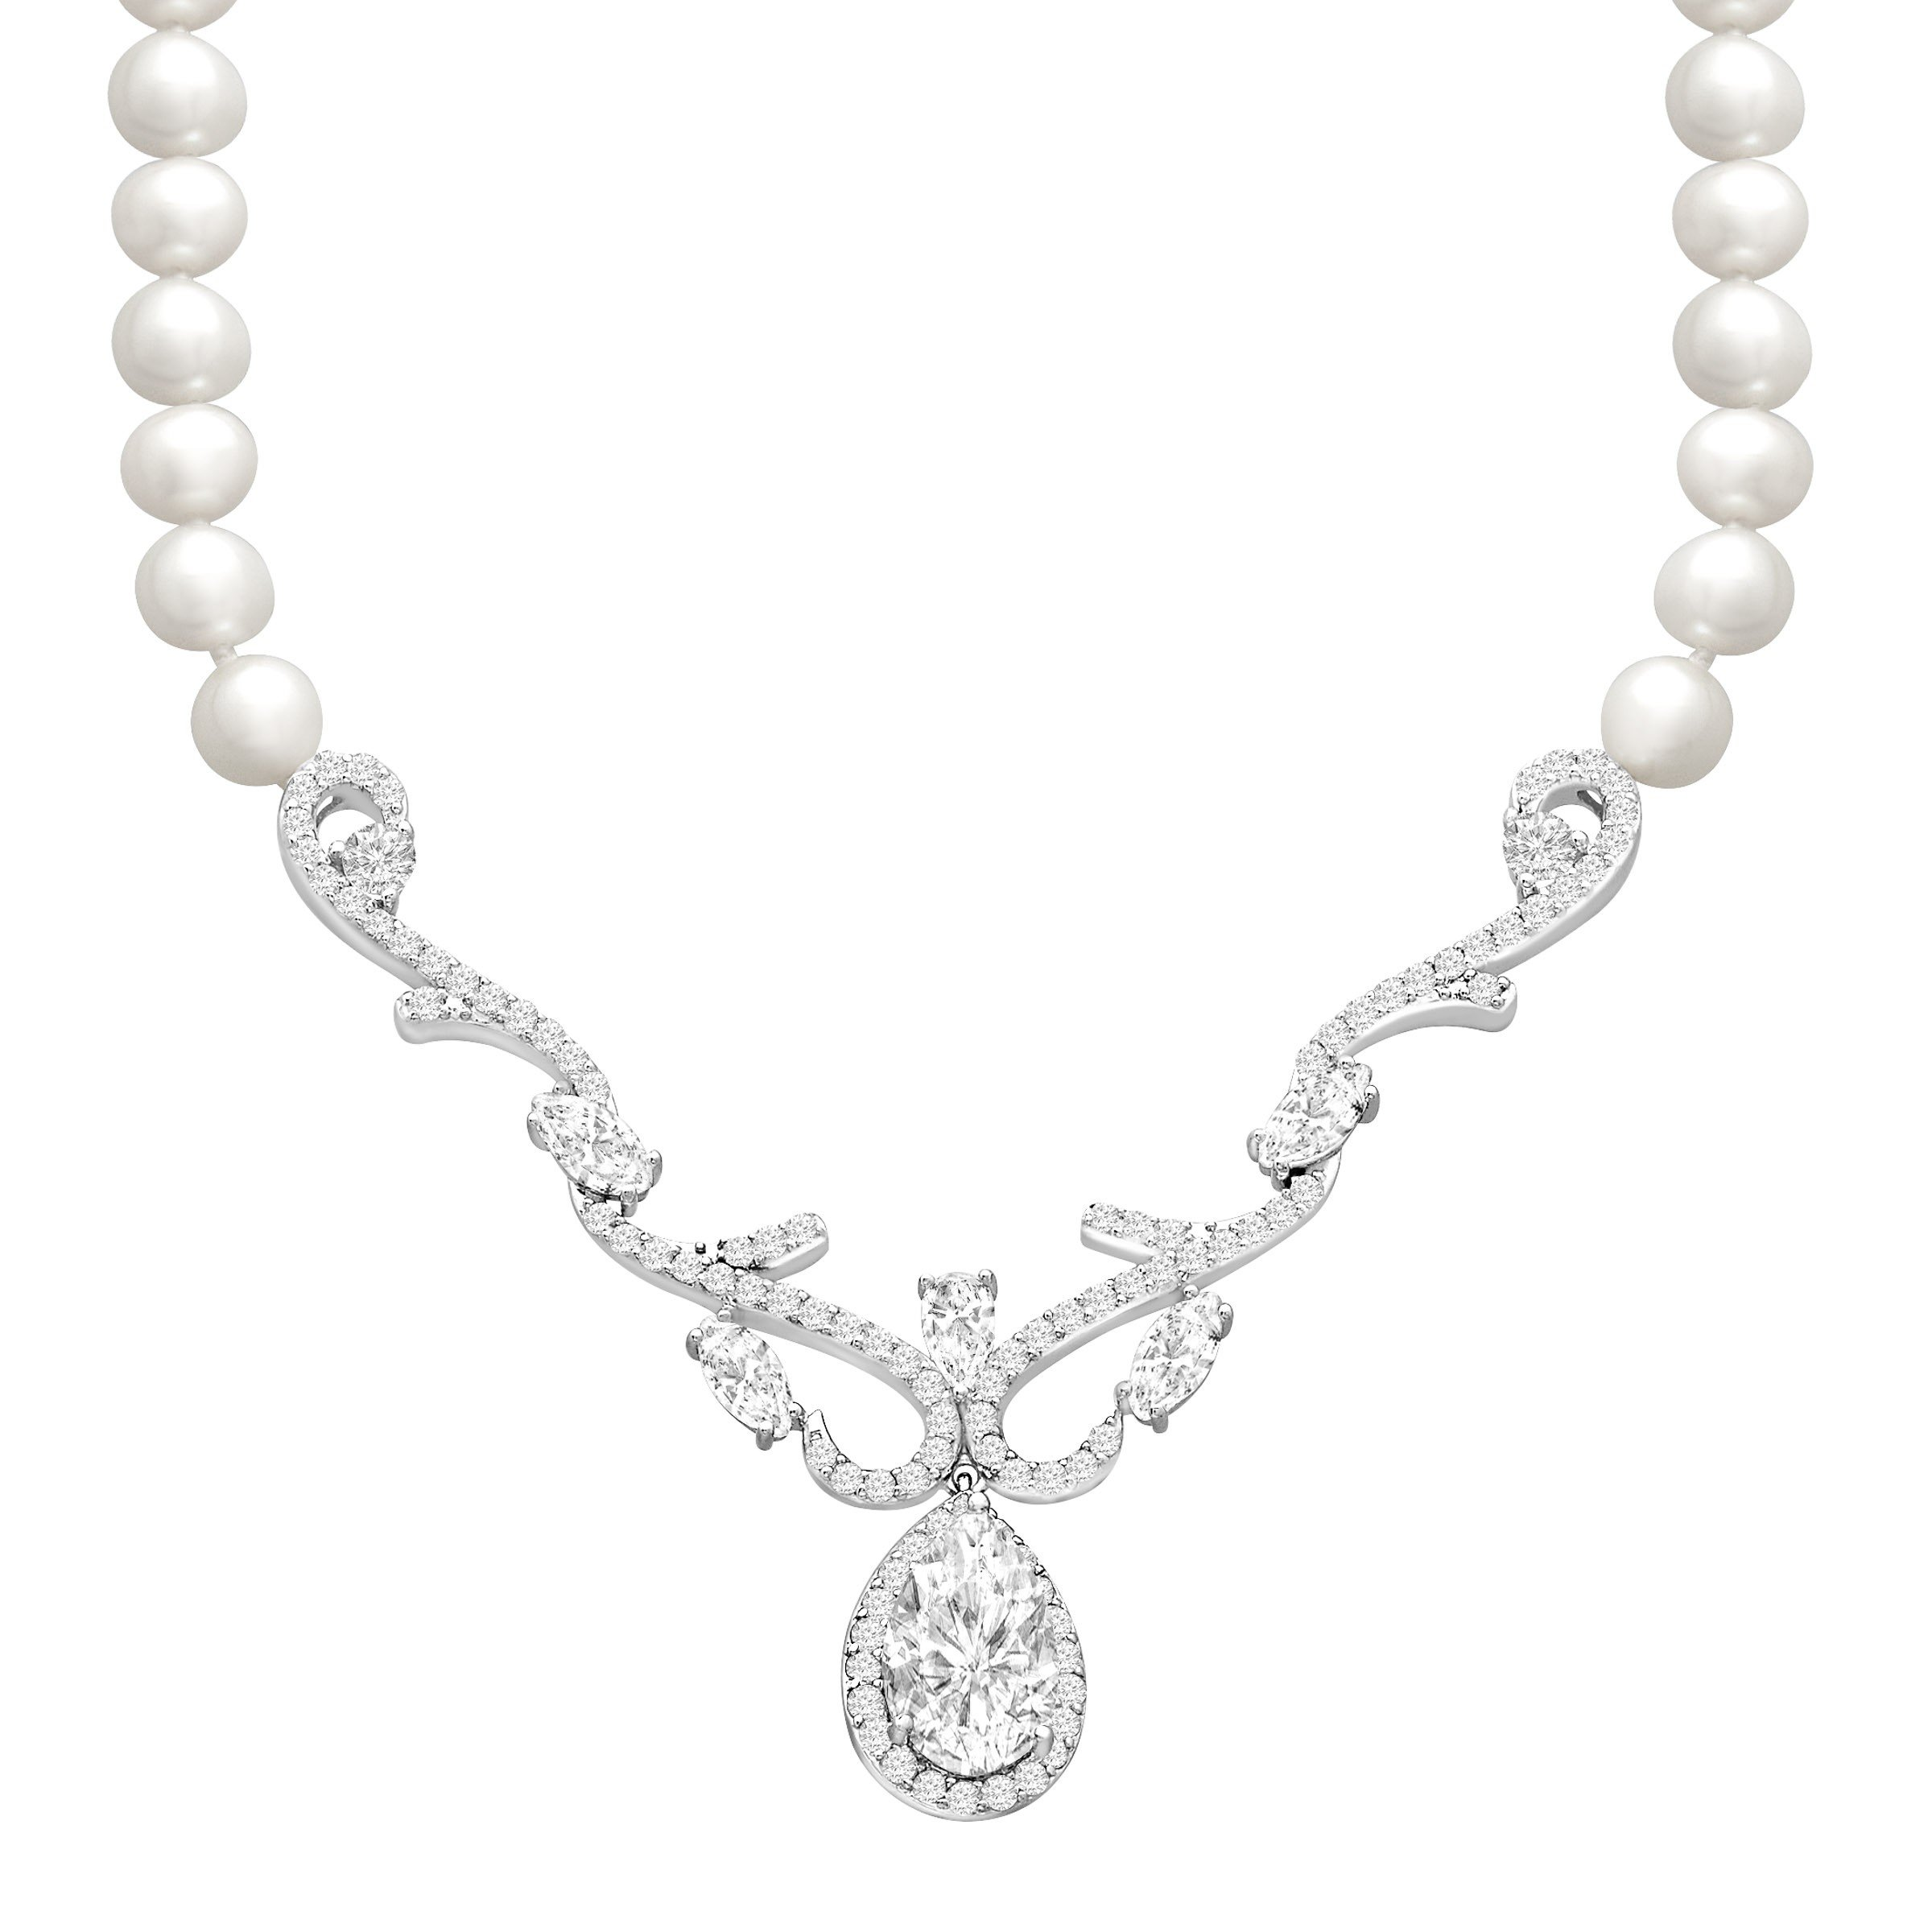 5 ct White Topaz and Freshwater Cultured Pearl Necklace in Sterling Silver